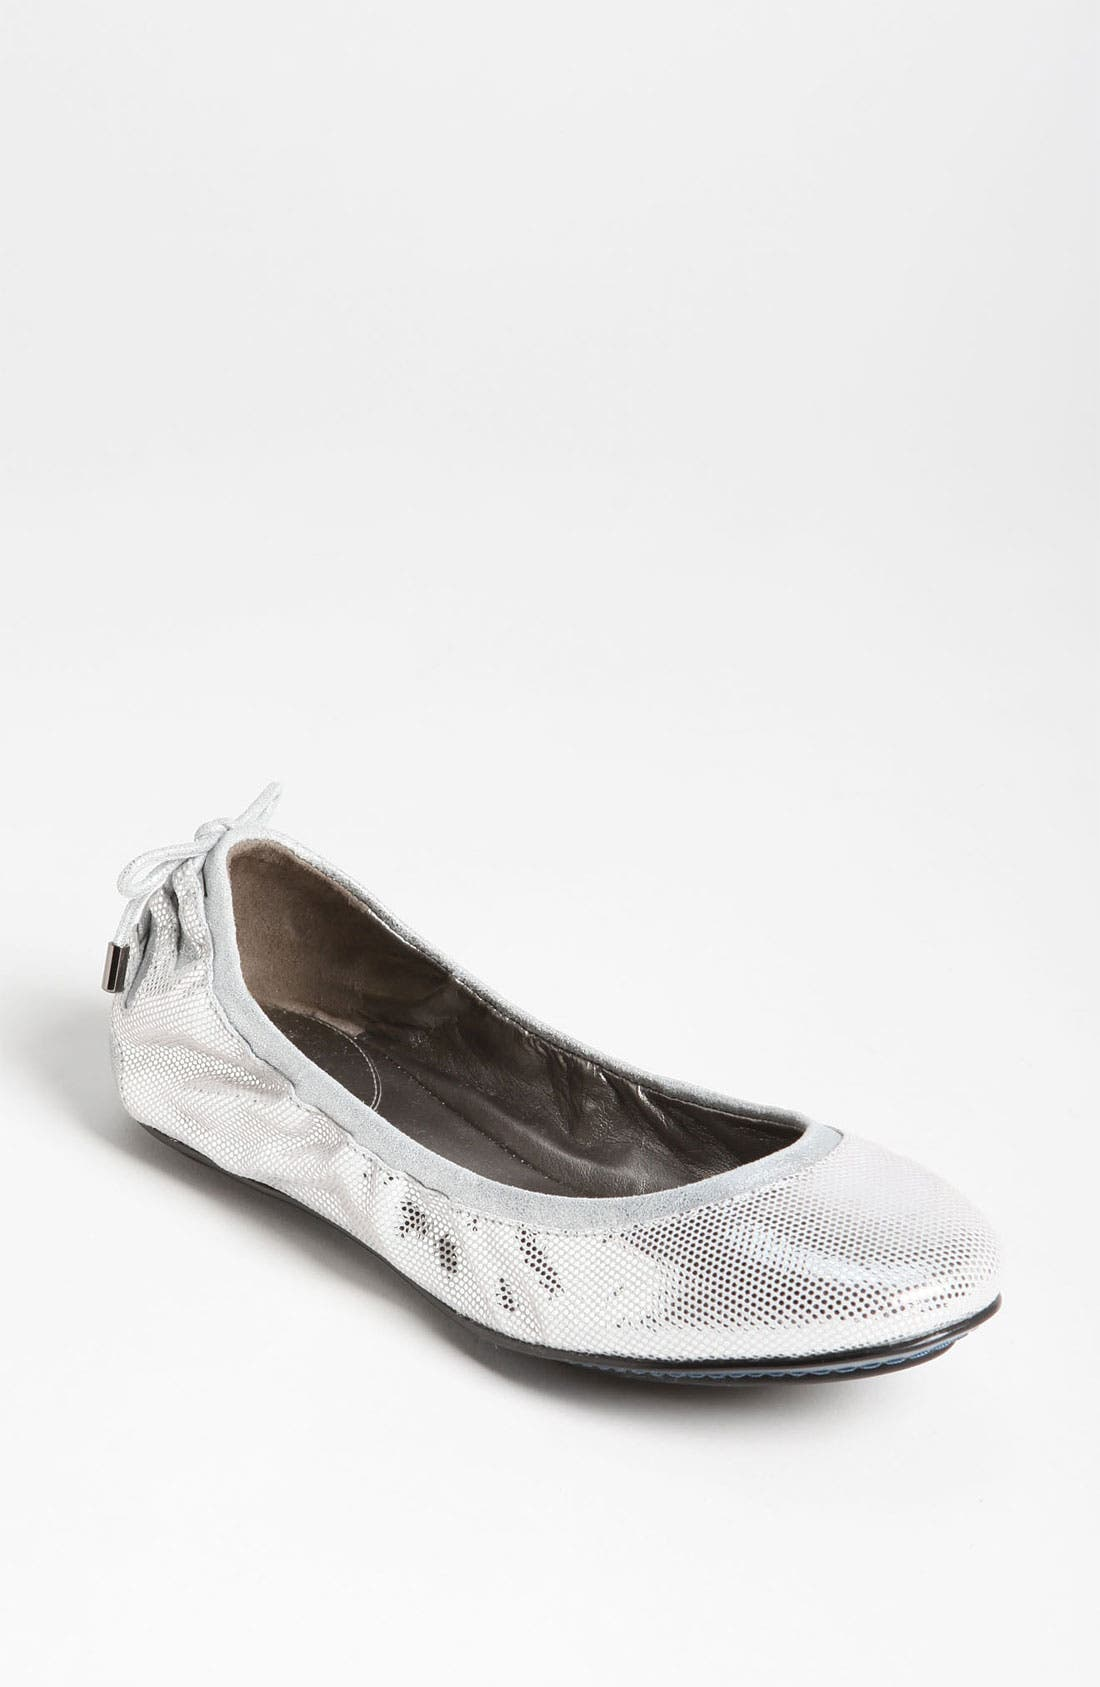 ,                             Maria Sharapova by Cole Haan 'Air Bacara' Flat,                             Main thumbnail 18, color,                             042